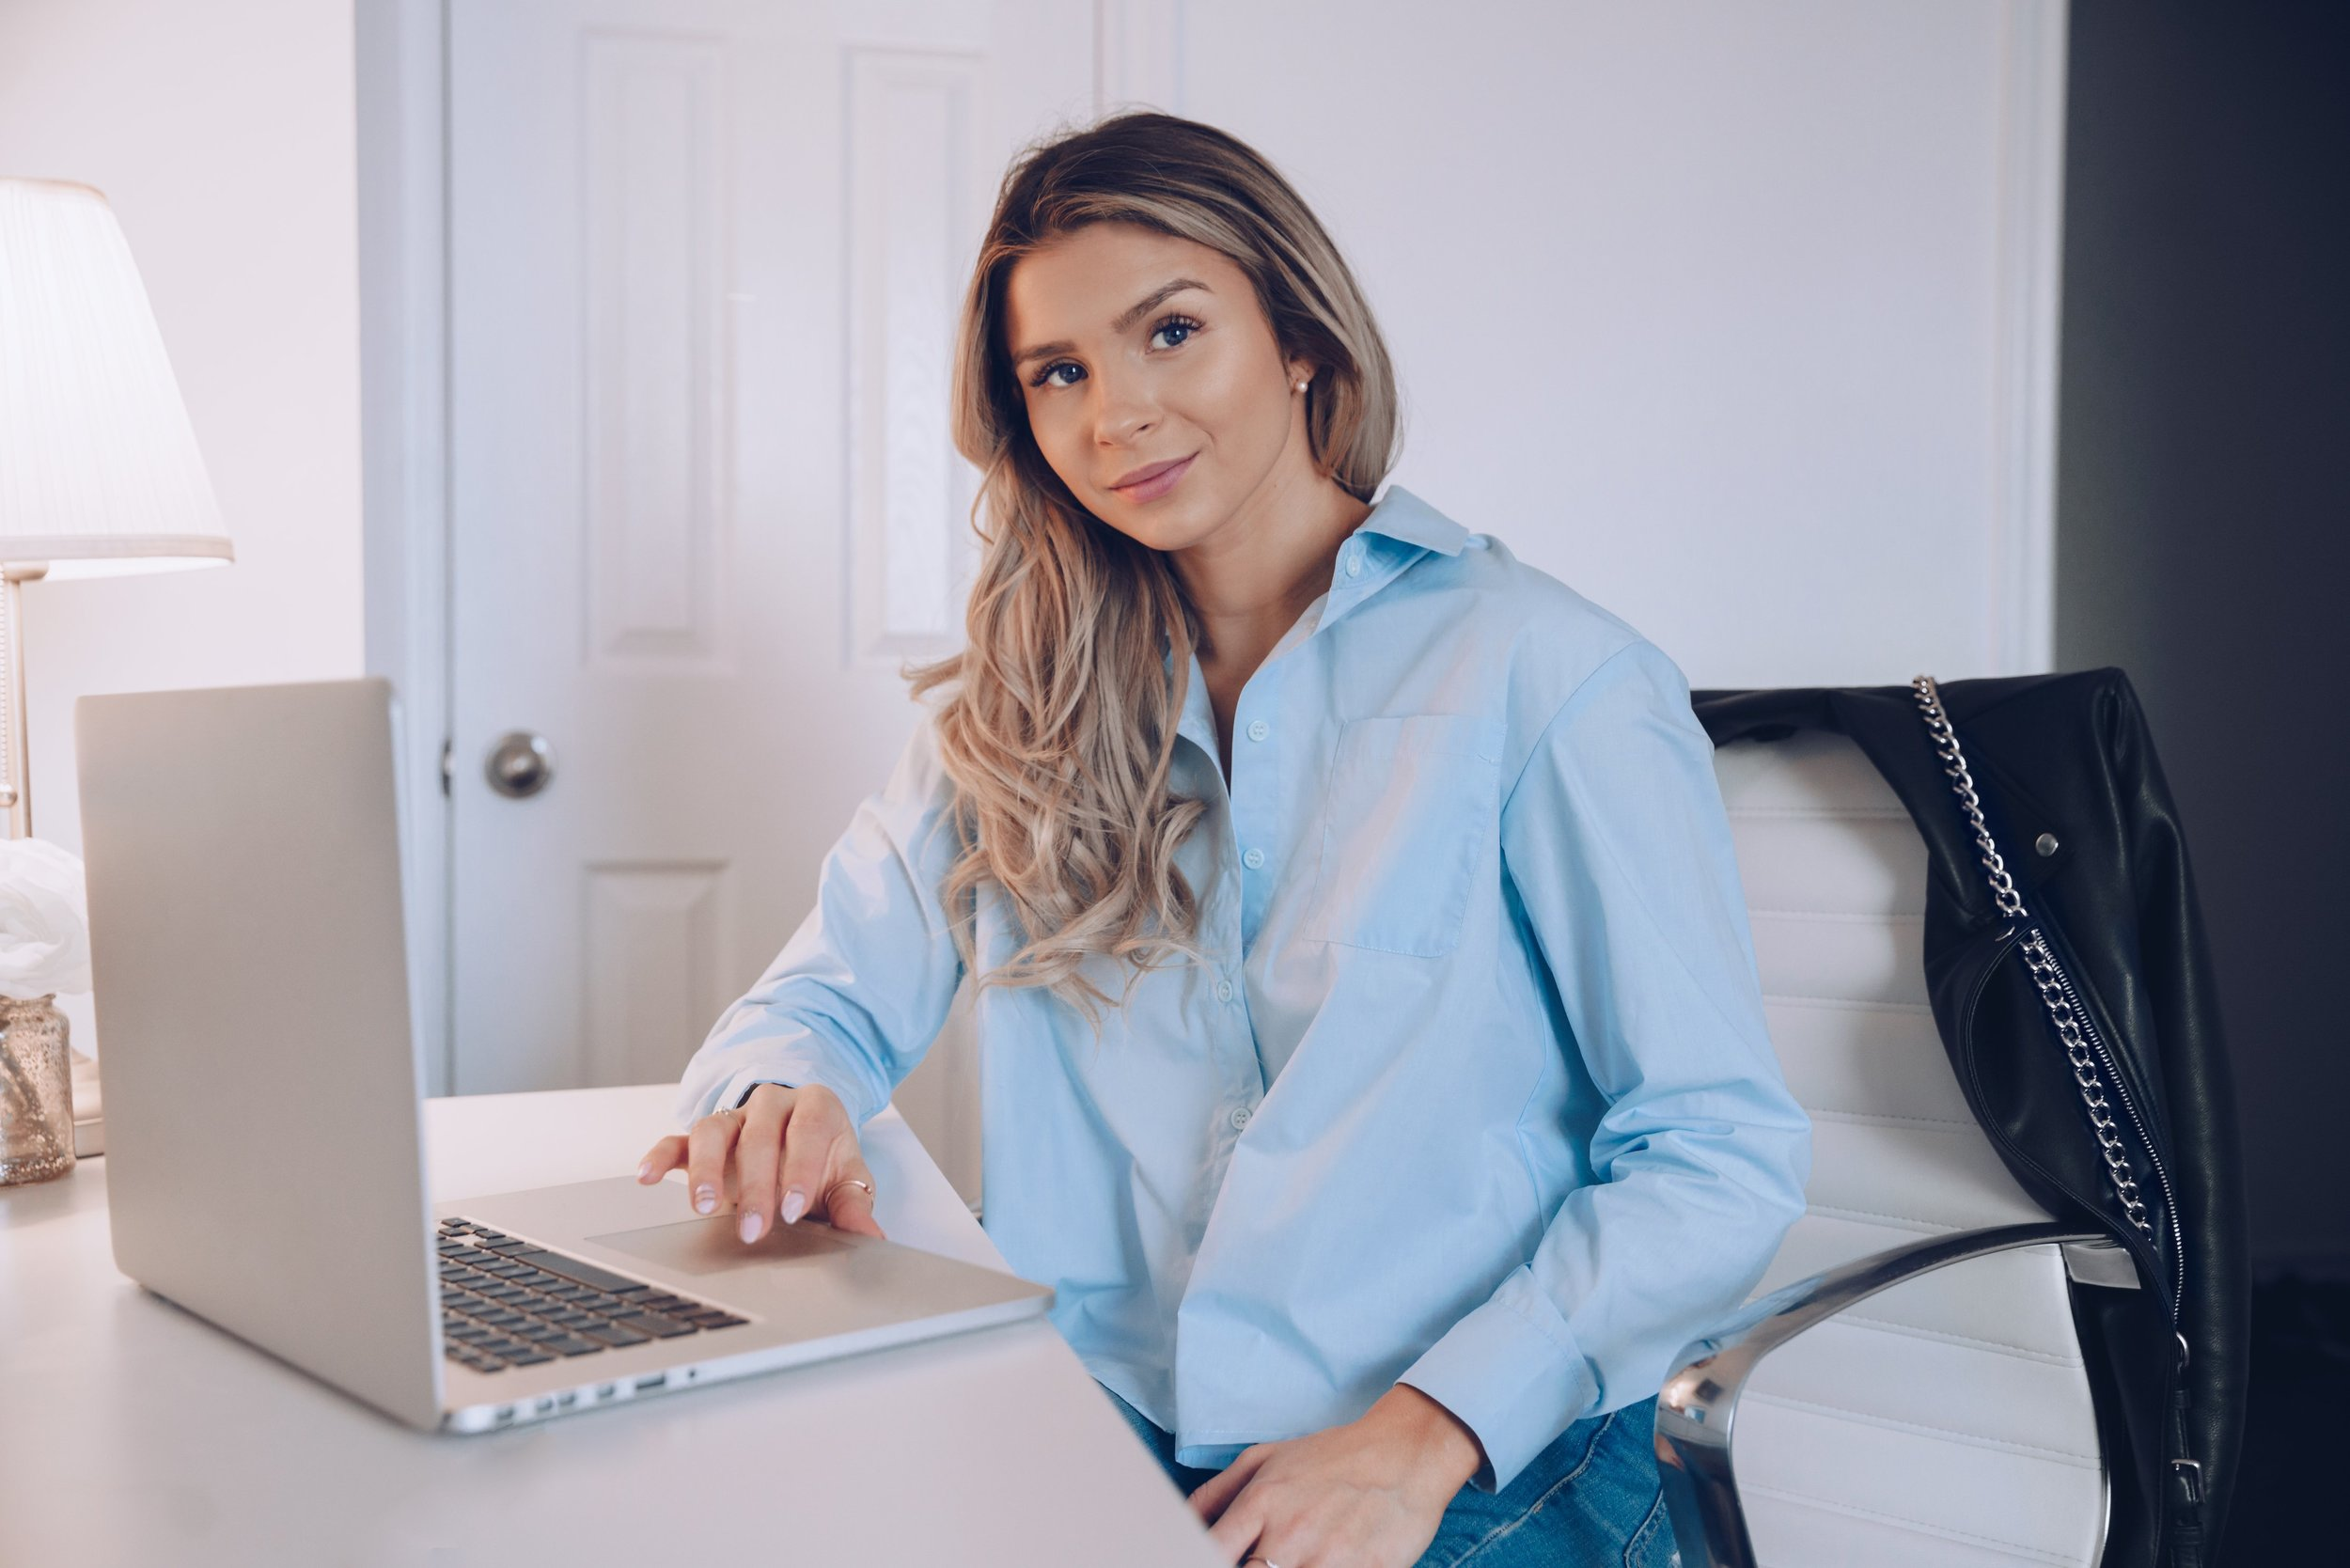 business-woman-with-laptop_4460x4460.jpg